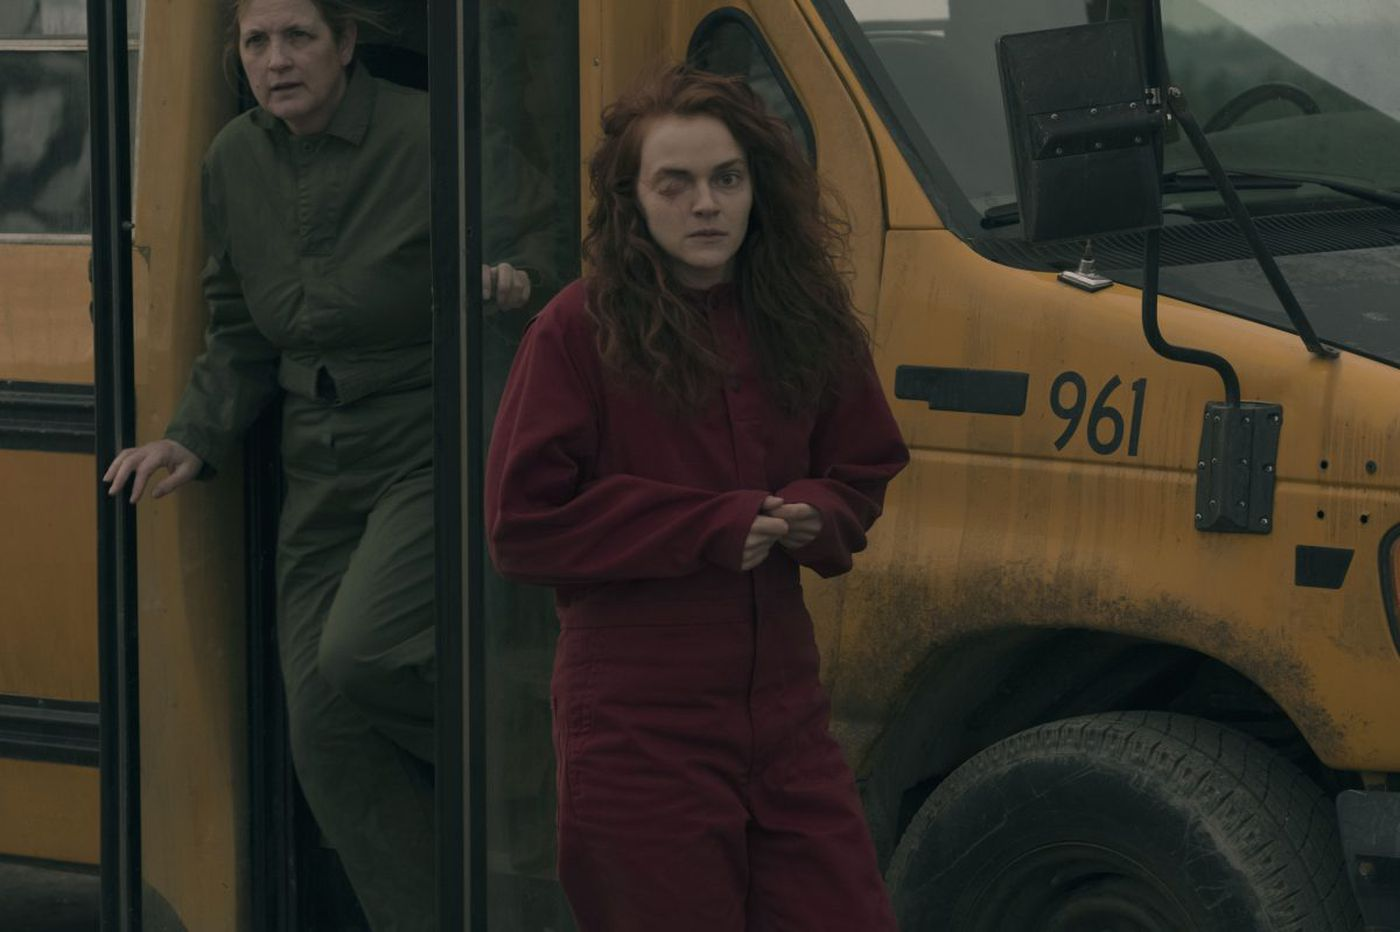 S. Jersey 'Handmaid's Tale' star: Her one-eyed character, Janine, is 'just happy to be alive'